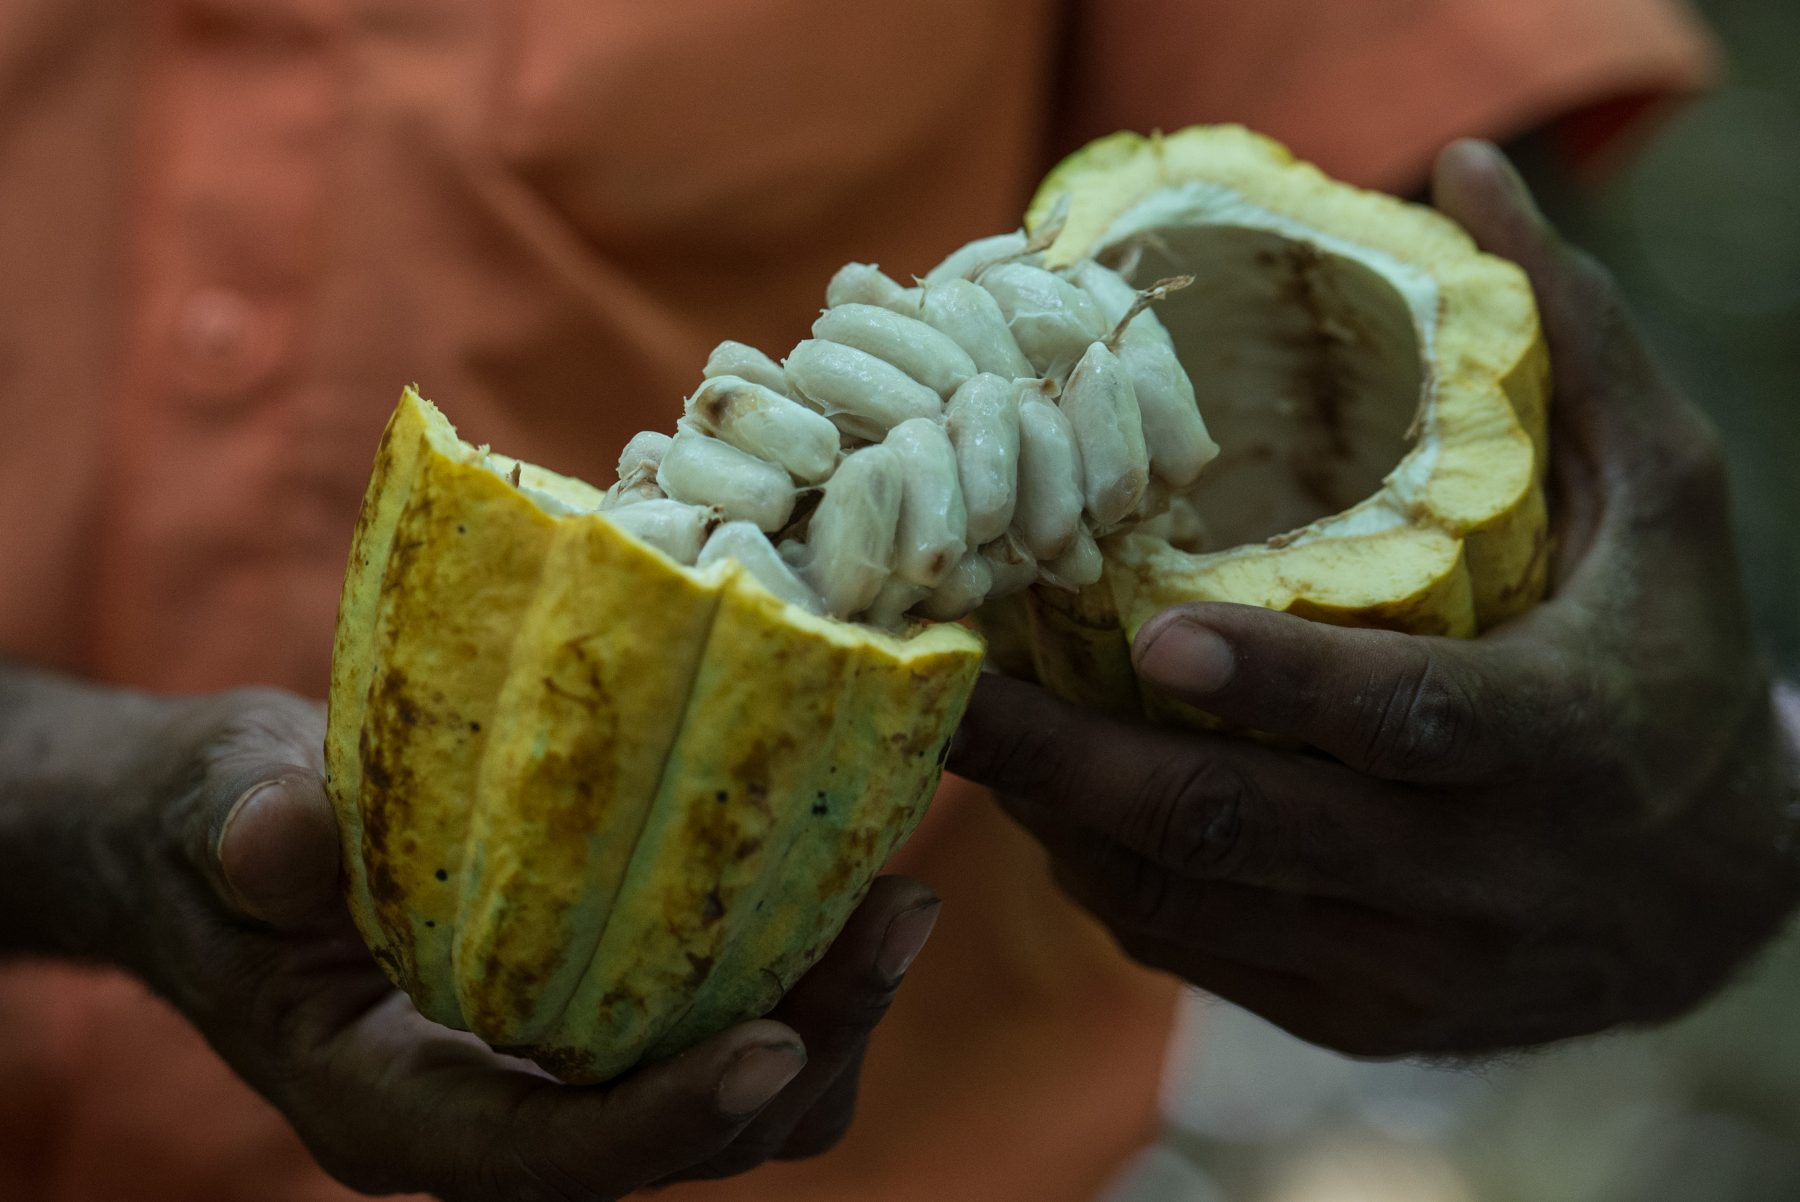 TO GO WITH AFP STORY BY YANA MARULL A farmer shows cocoa beans in Sao Felix do Xingu, Para state, northern Brazil, on August 7, 2013. AFP PHOTO / YASUYOSHI CHIBA / AFP PHOTO / YASUYOSHI CHIBA